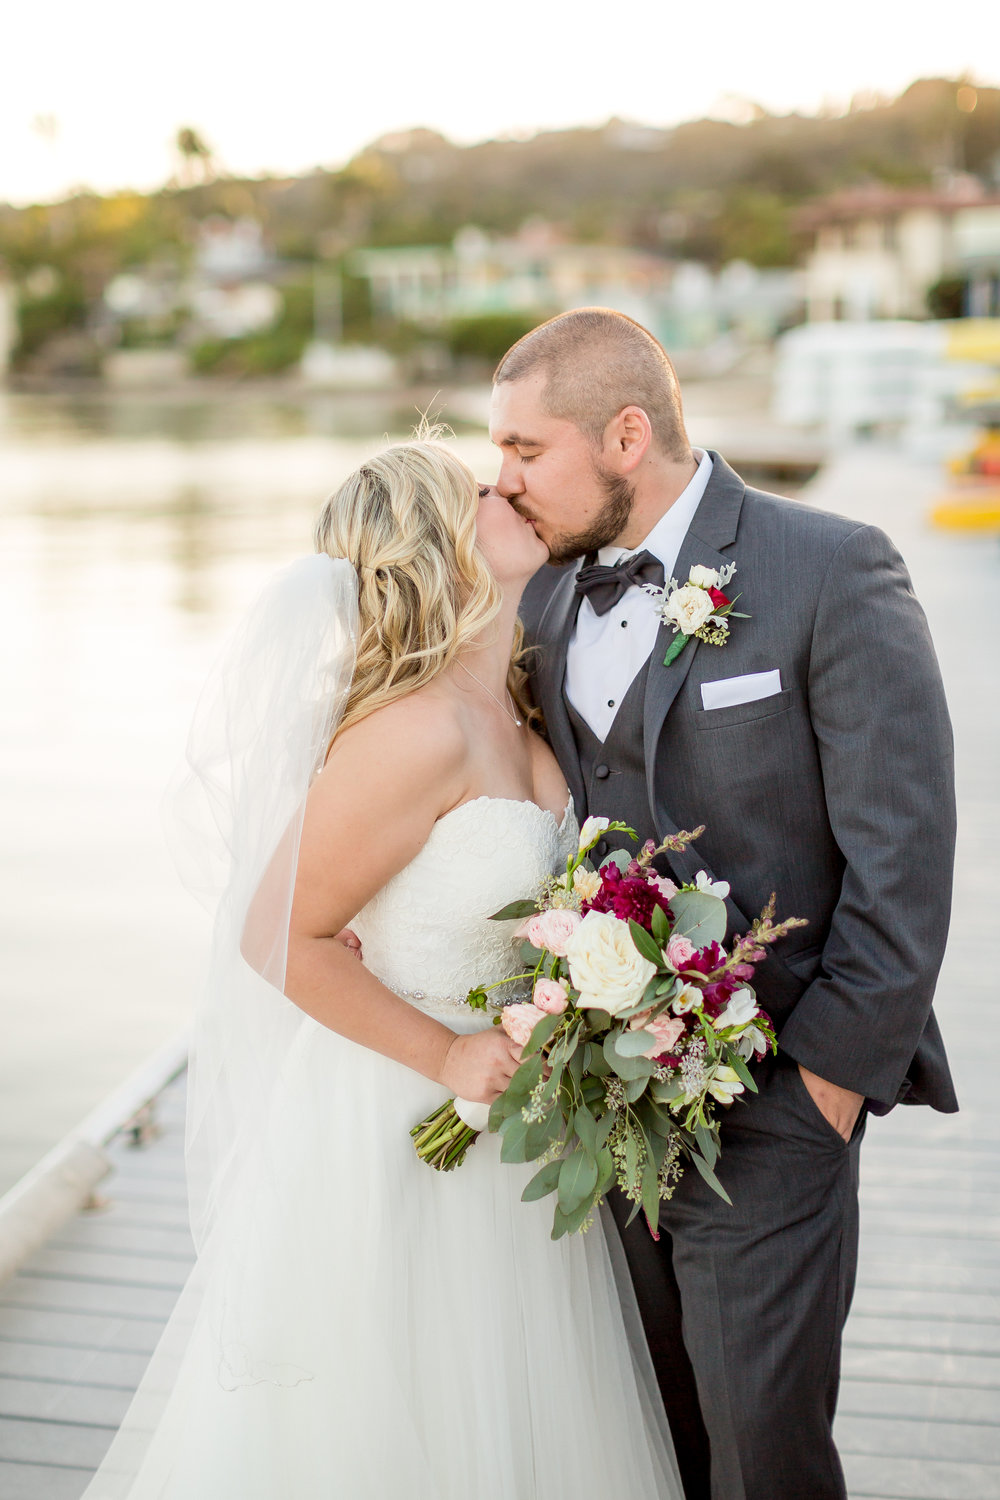 Becca_Mark_Southwestern_Yacht_Club_Wedding_563.jpg